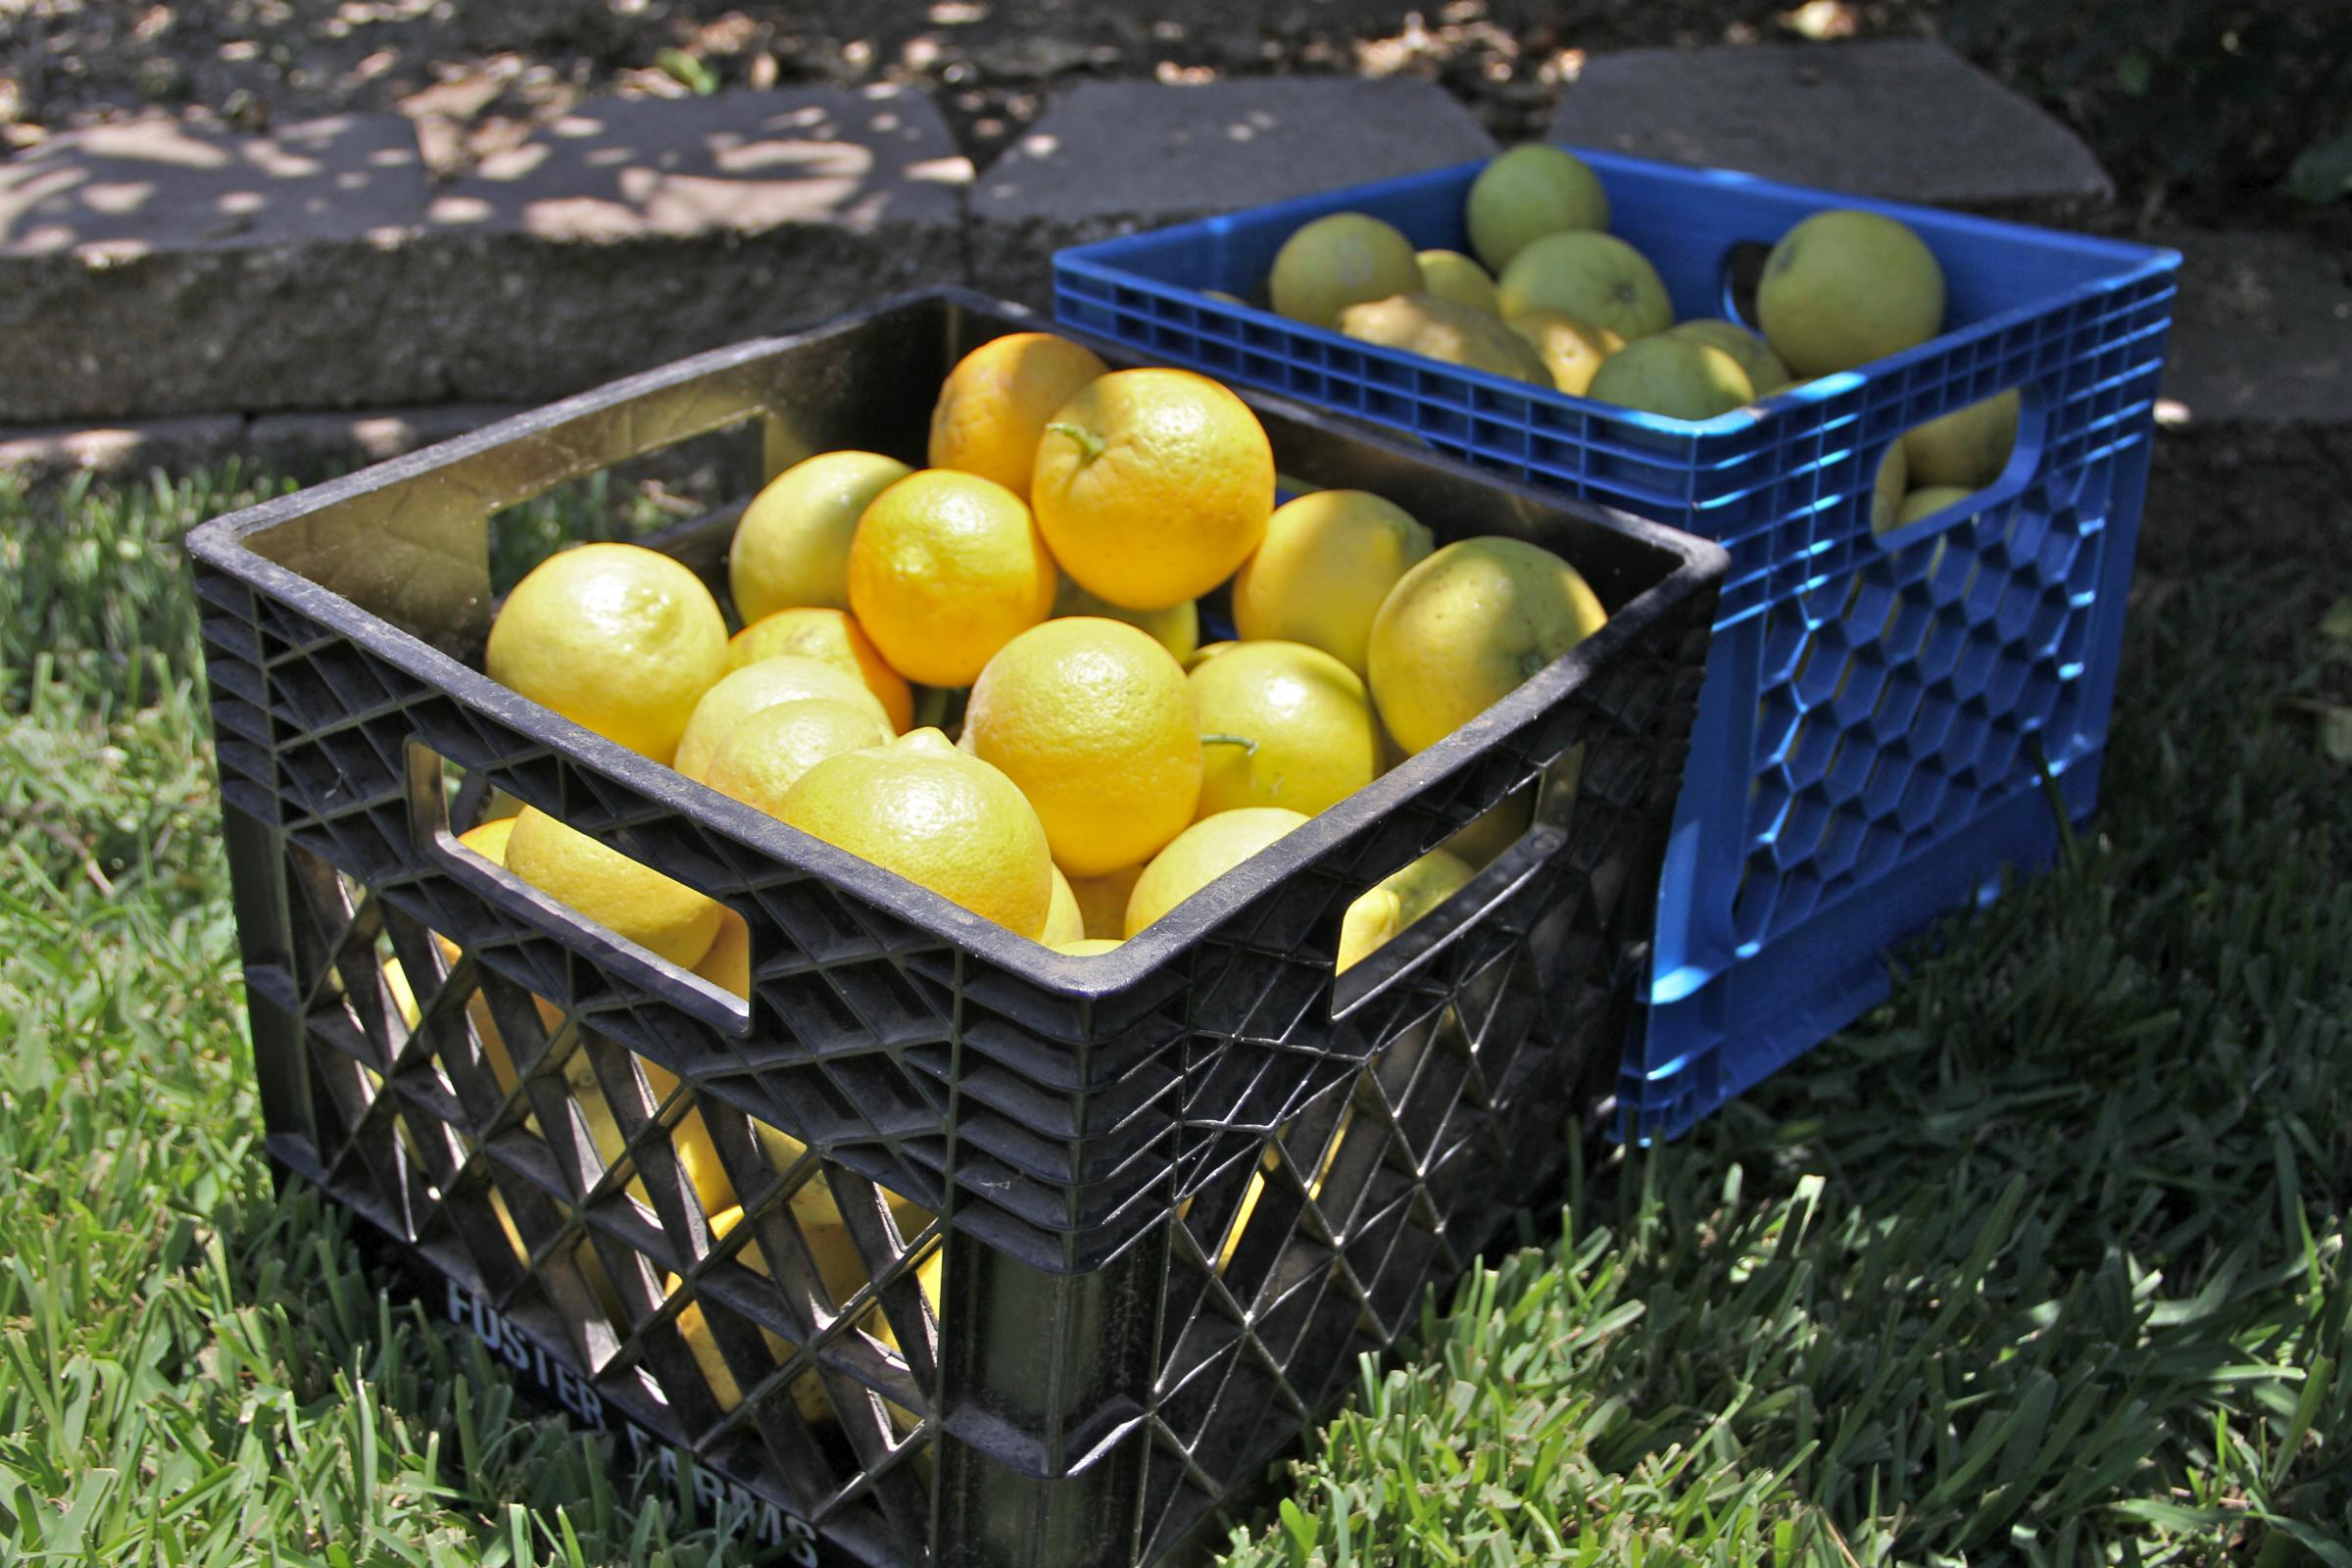 backyard citrus harvest helps feed those in need valley public radio